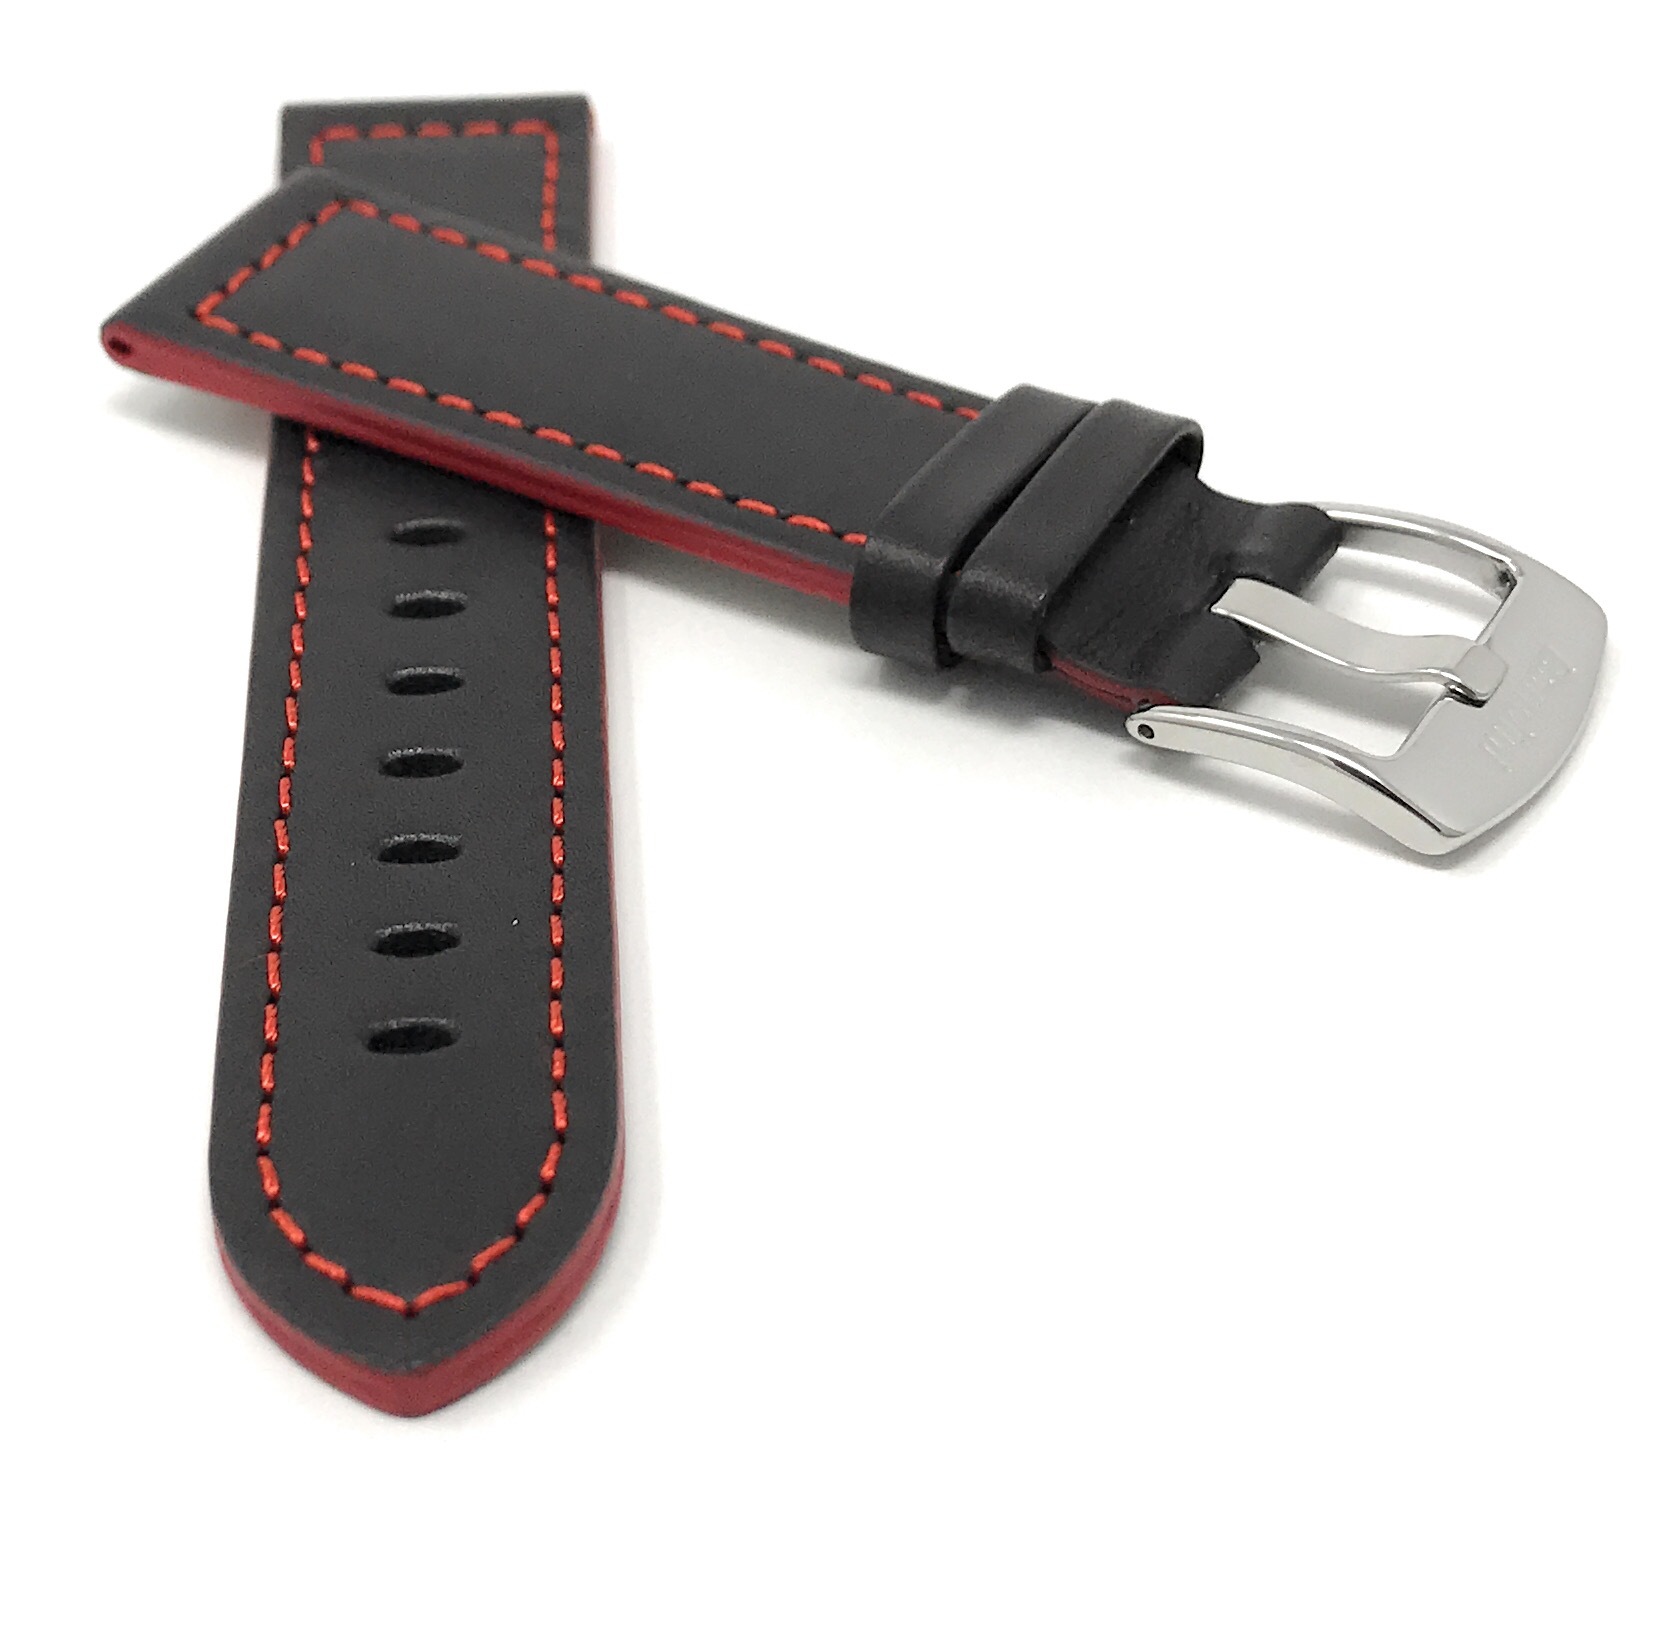 Bandini-Leather-Watch-Band-Racer-Strap-5-Colors-18-20-22-24mm-Extra-Long-Too thumbnail 22